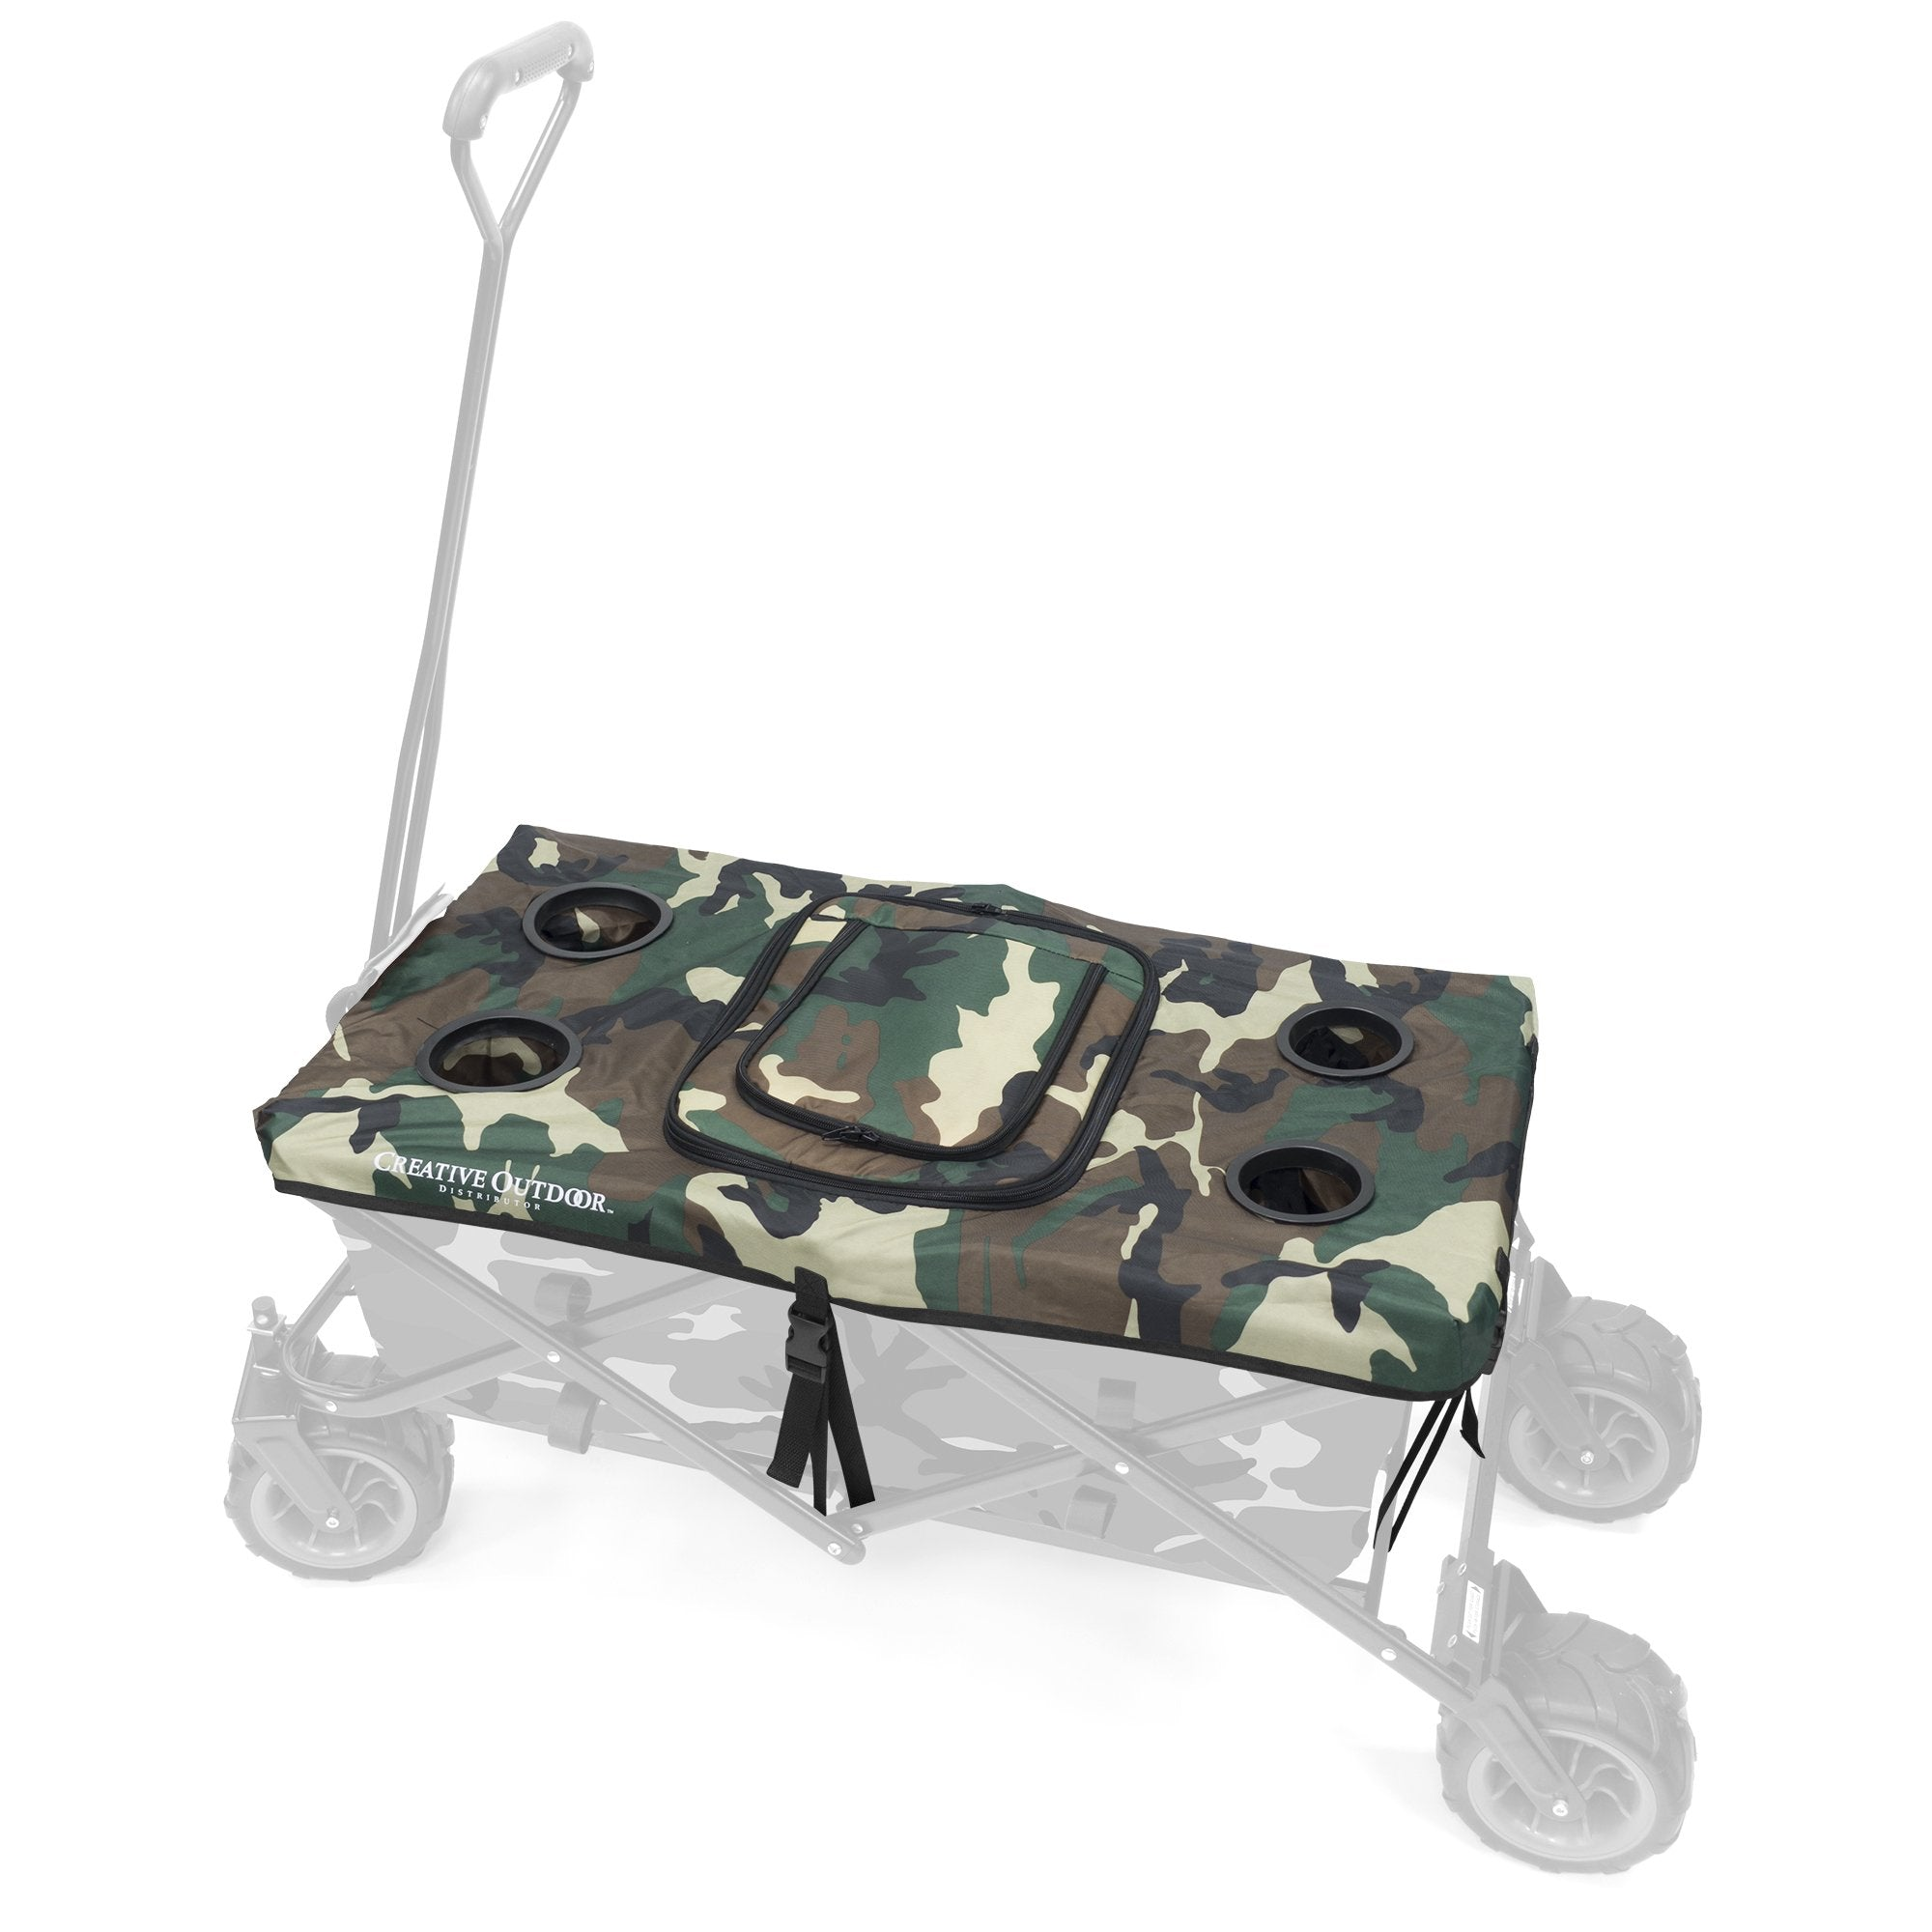 All-Terrain Folding Wagon Tabletop Cooler Accessory | Camo